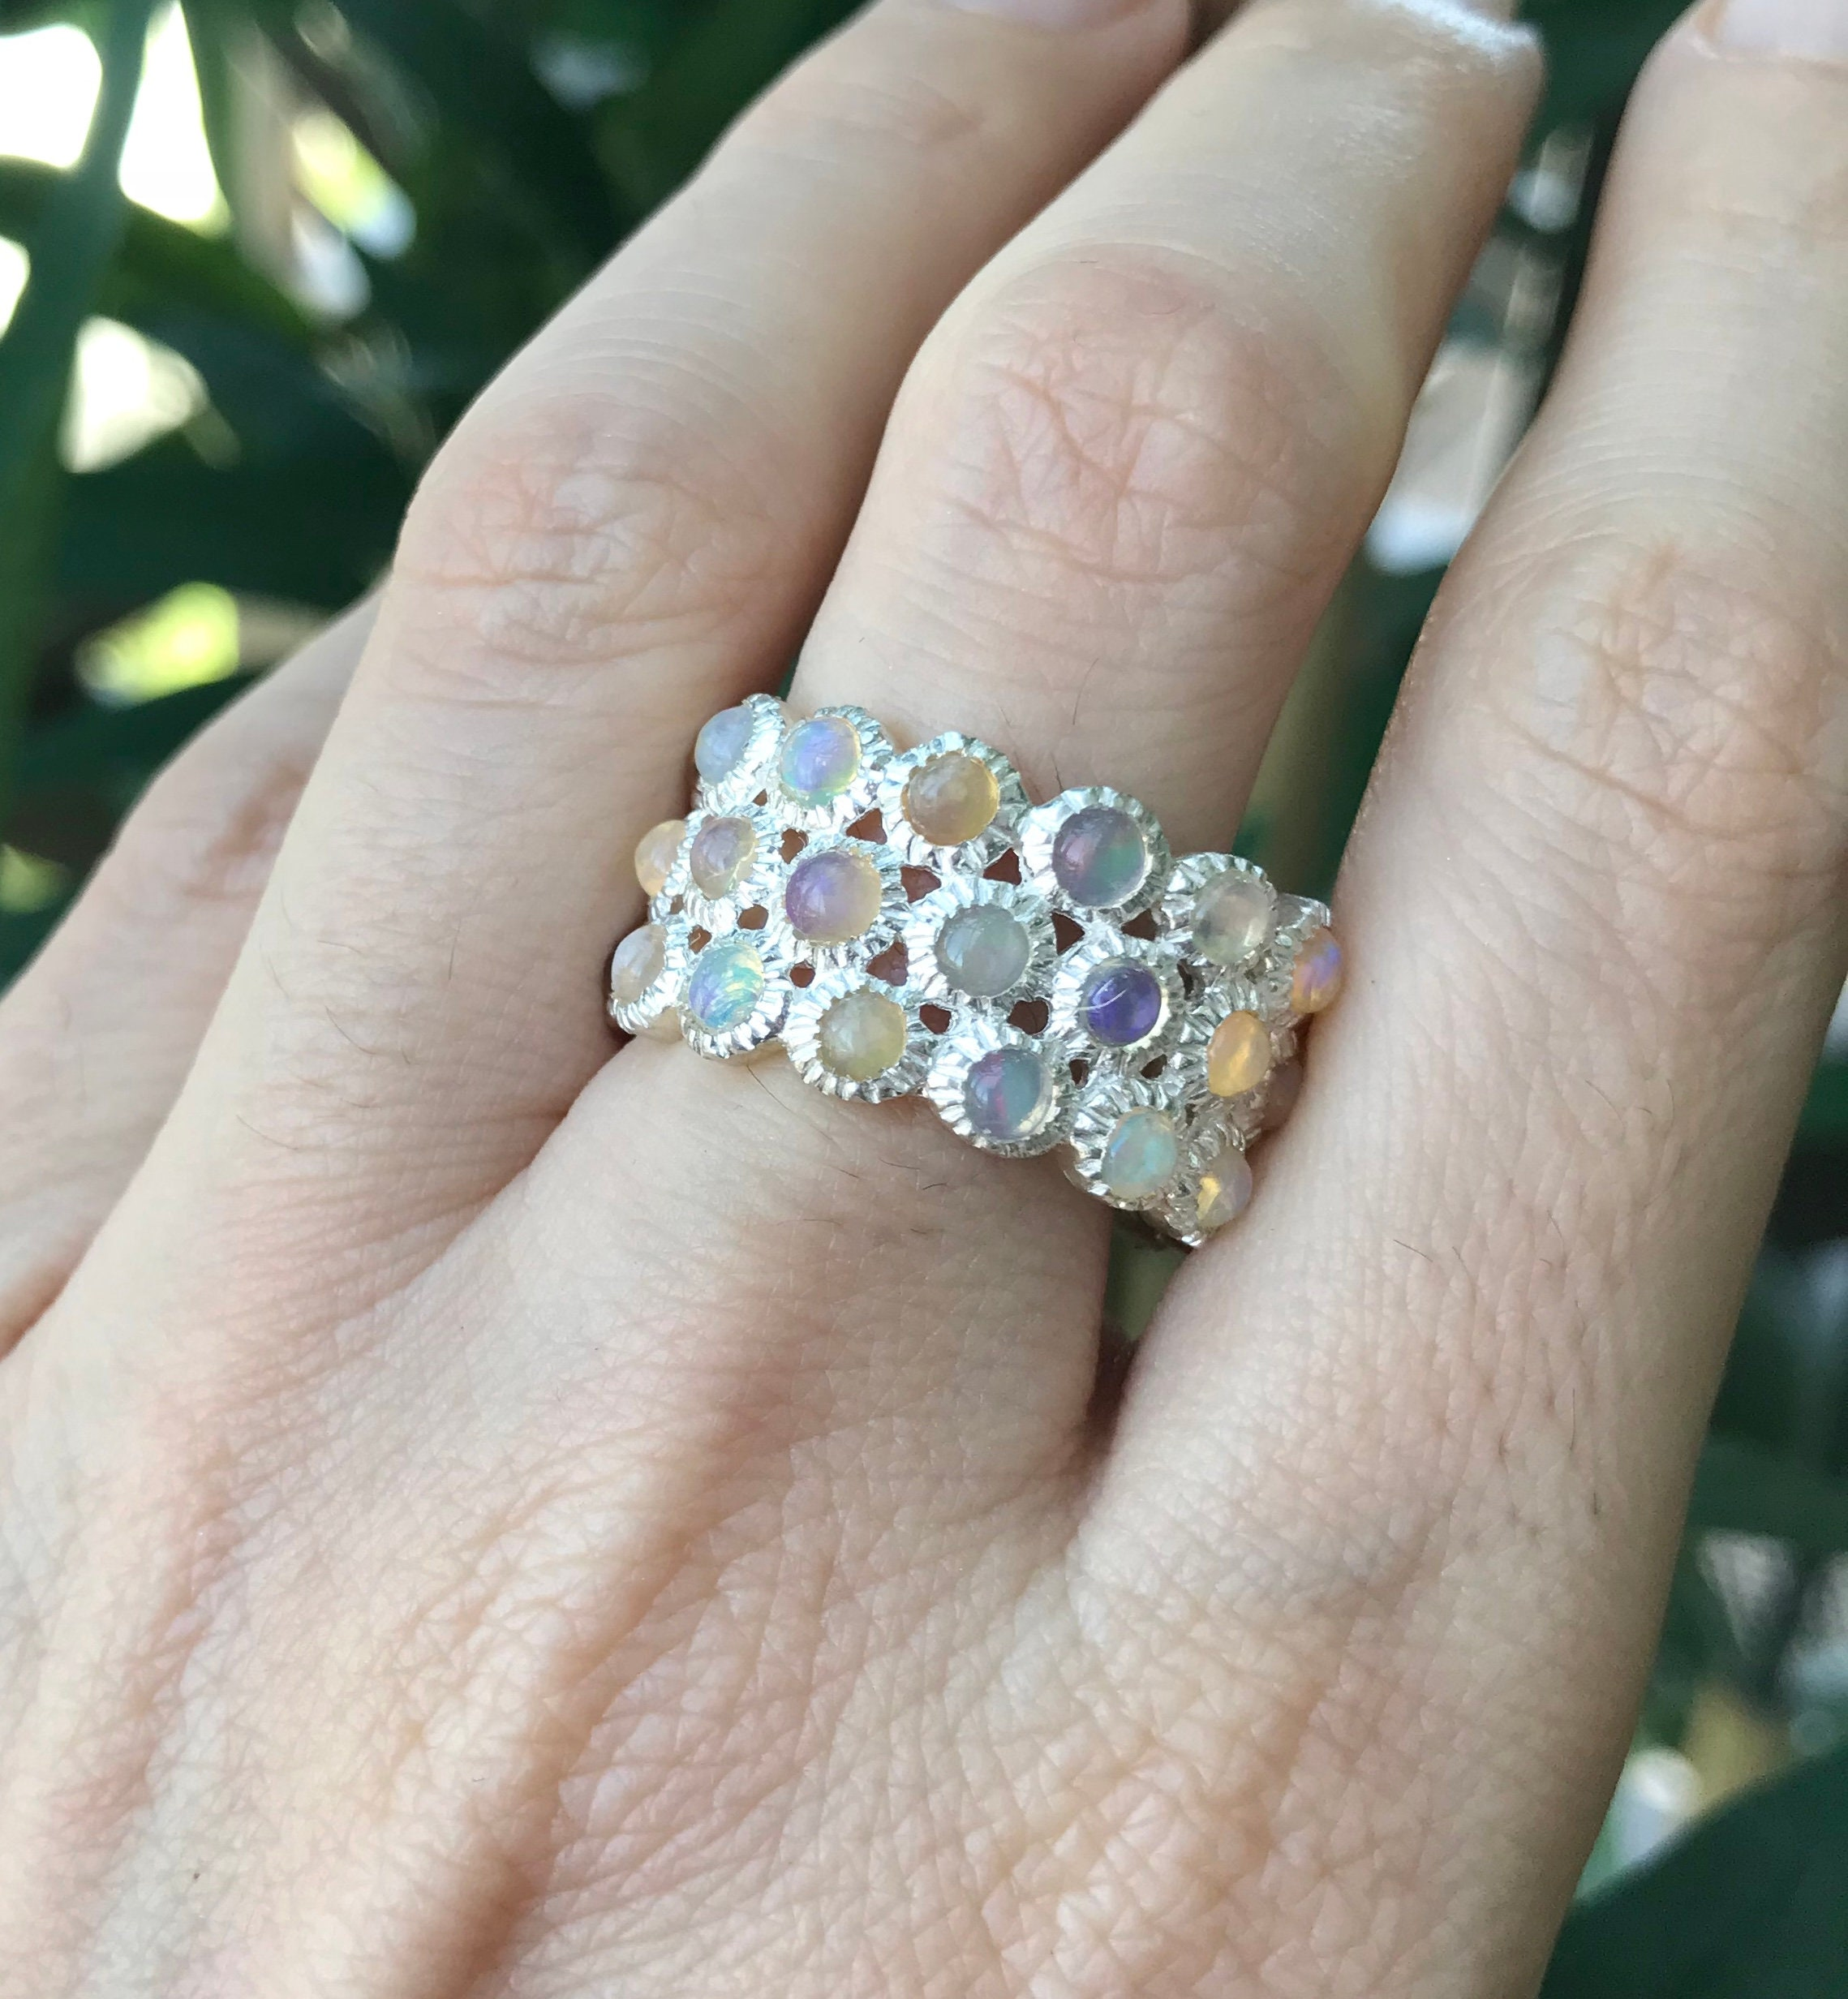 gemstone october wild and engagement textured gold birthstone tourmaline solitaire treasure pretty rings products wedding ring chest jewellery band pink silver